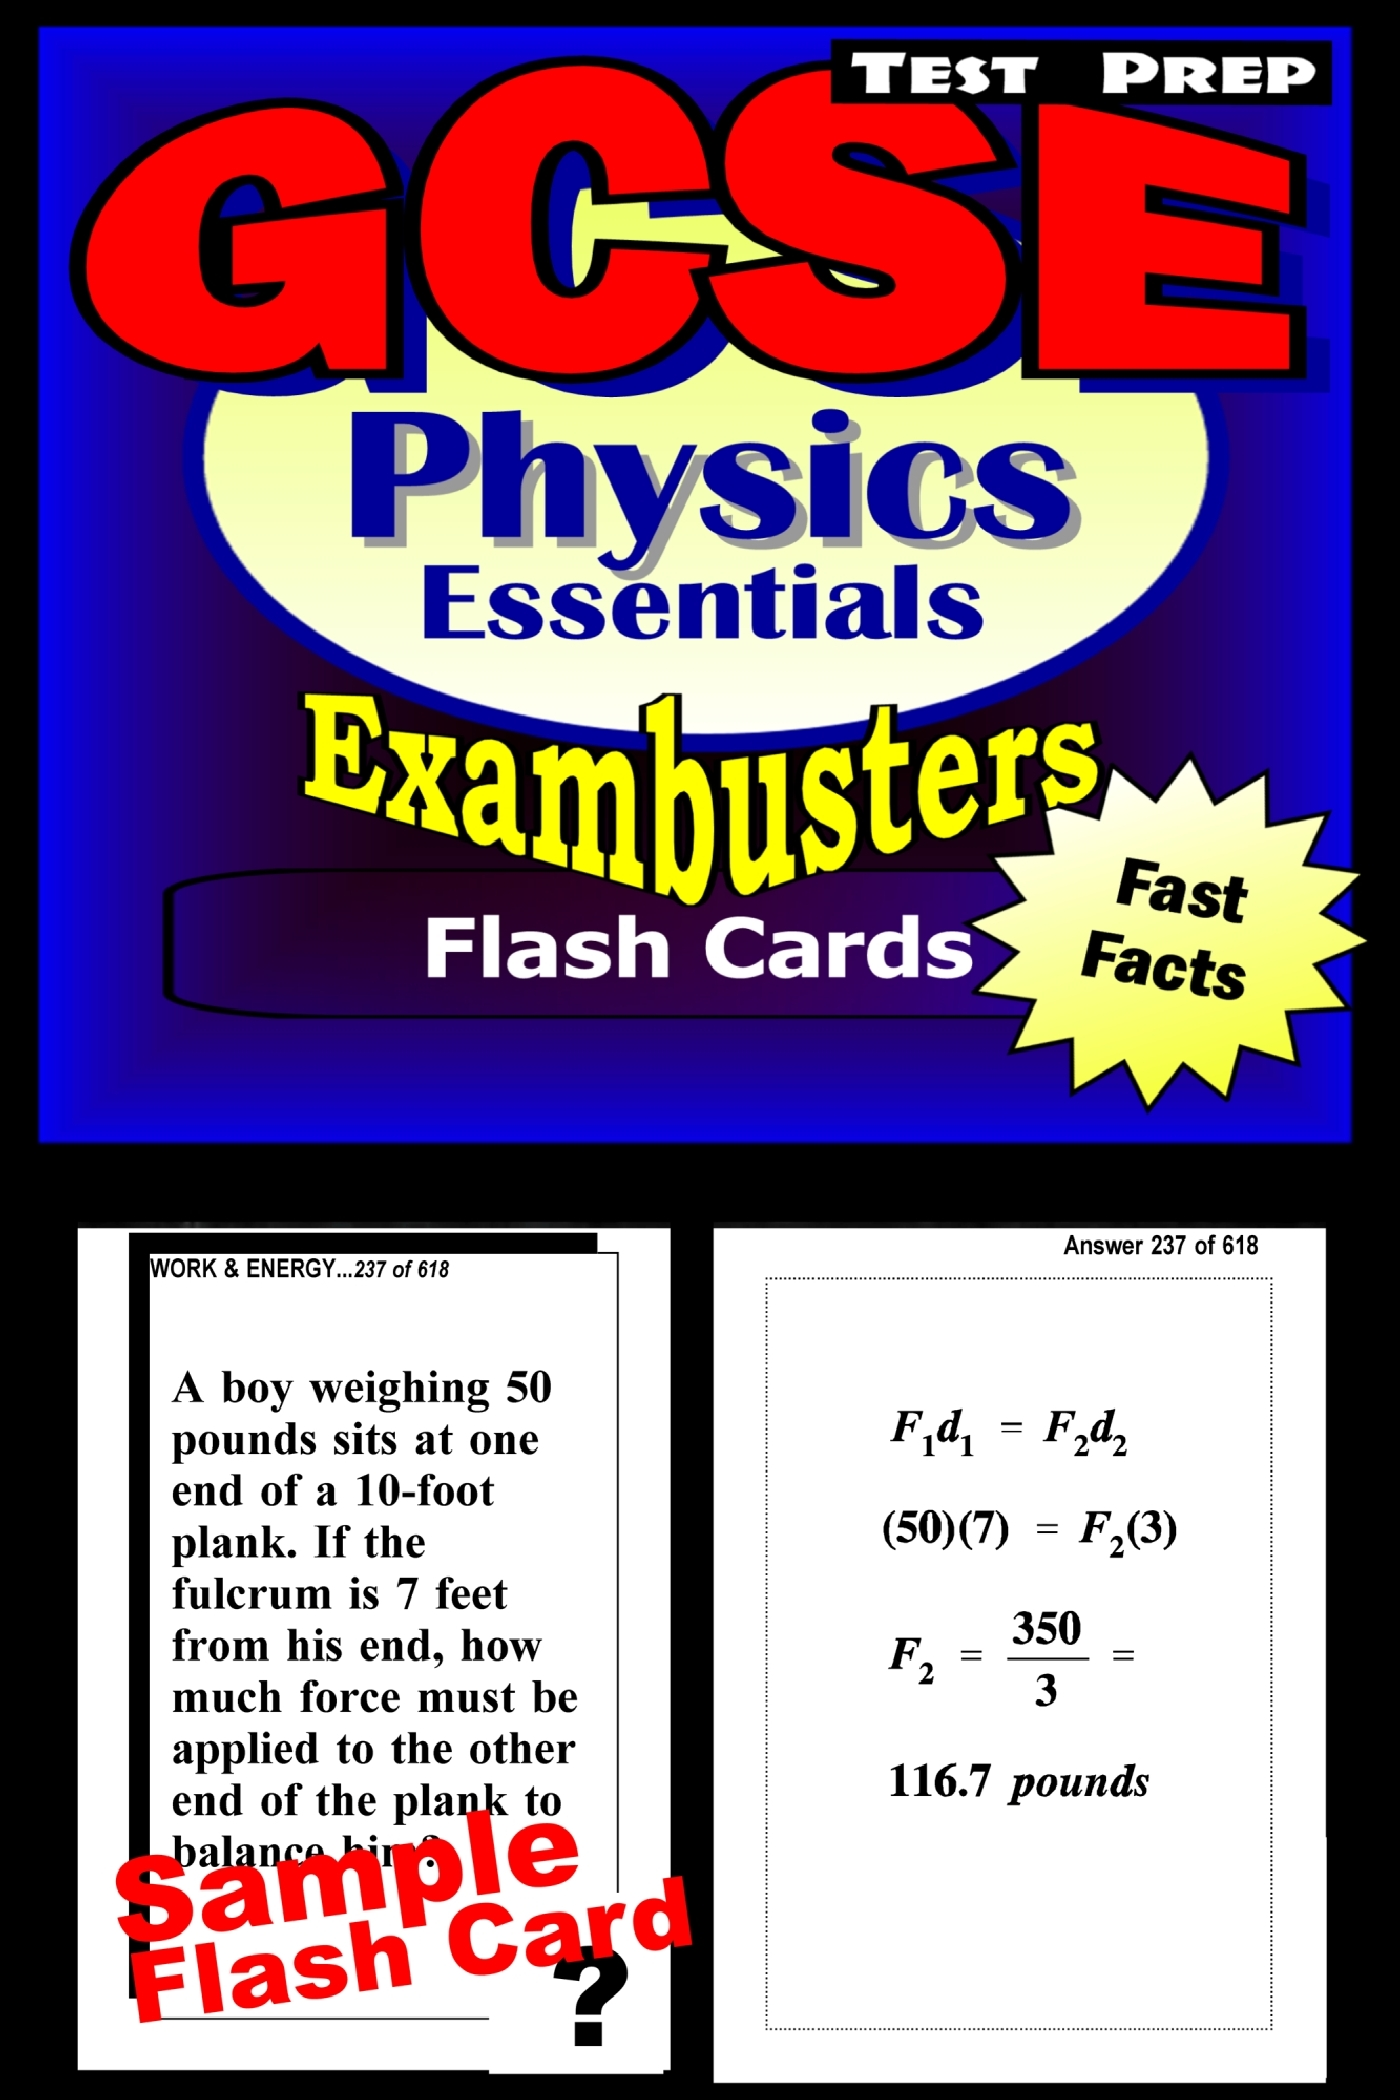 GCSE Physics Test Prep Review--Exambusters Flash Cards: GCSE Exam Study Guide